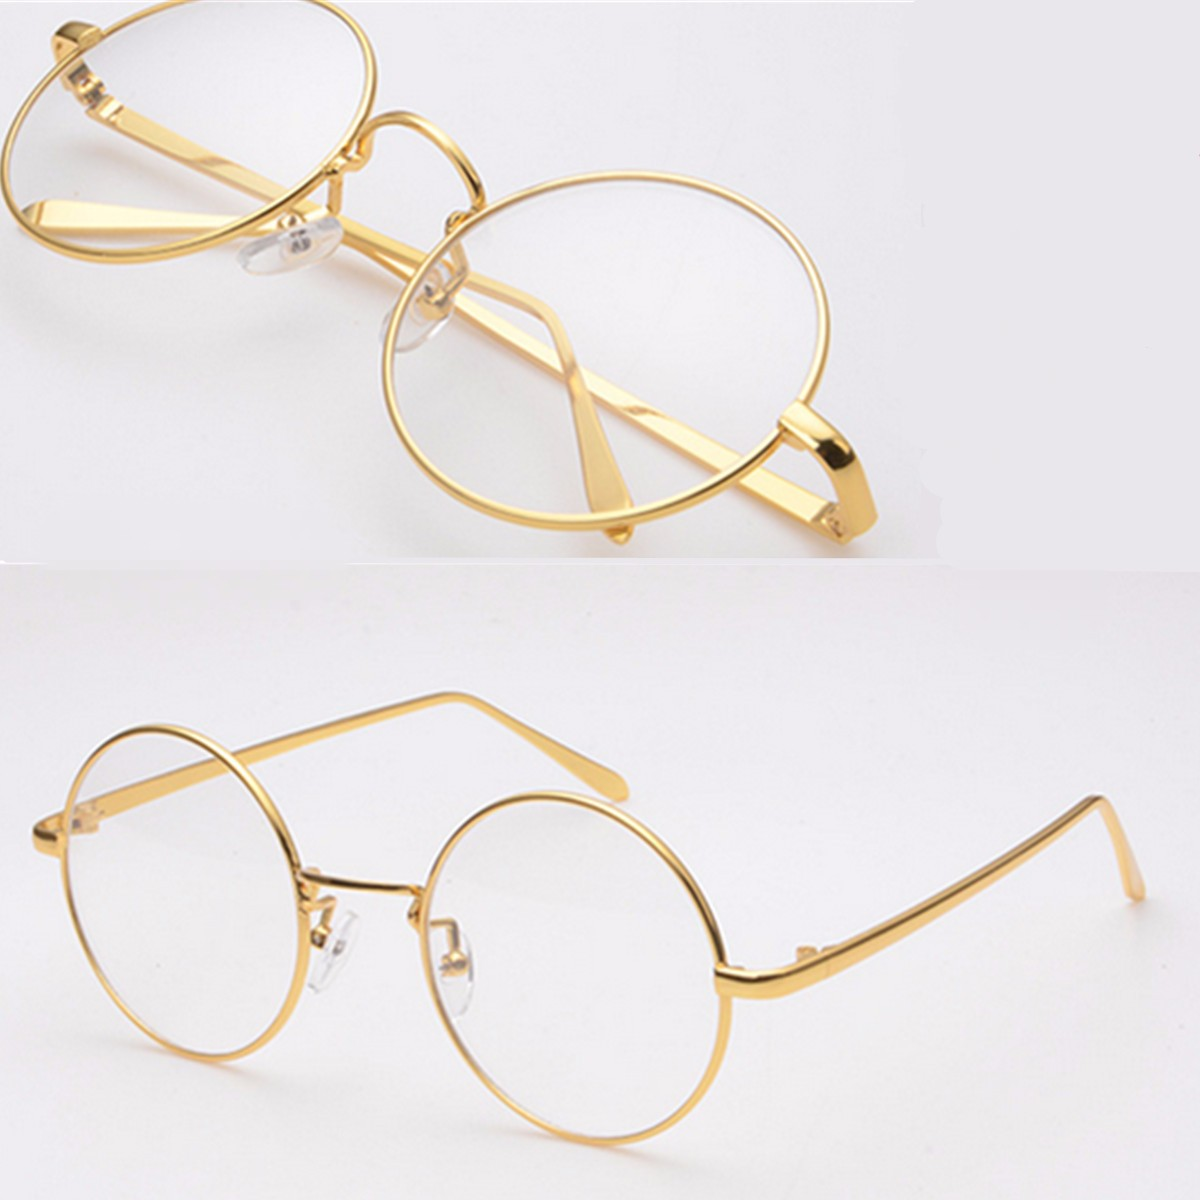 af8672fac477 GOLD Metal Vintage Round Eyeglasses Frame Clear Lens Full-Rim Glasses